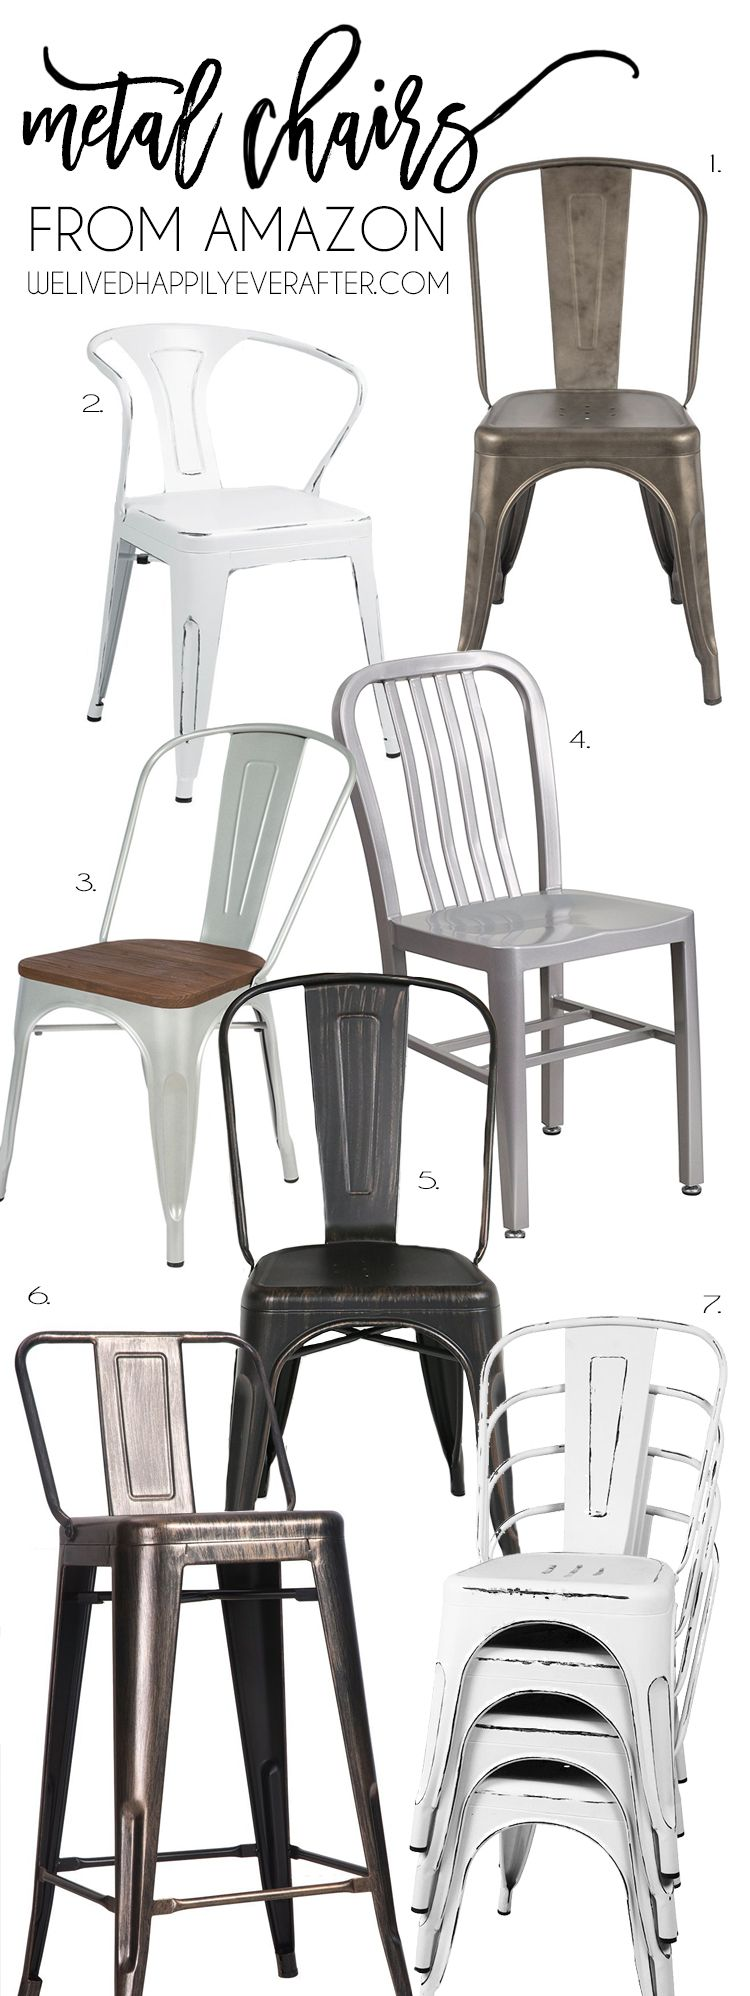 Industrial Farmhouse Fixer Upper Style Metal Chairs From Amazon